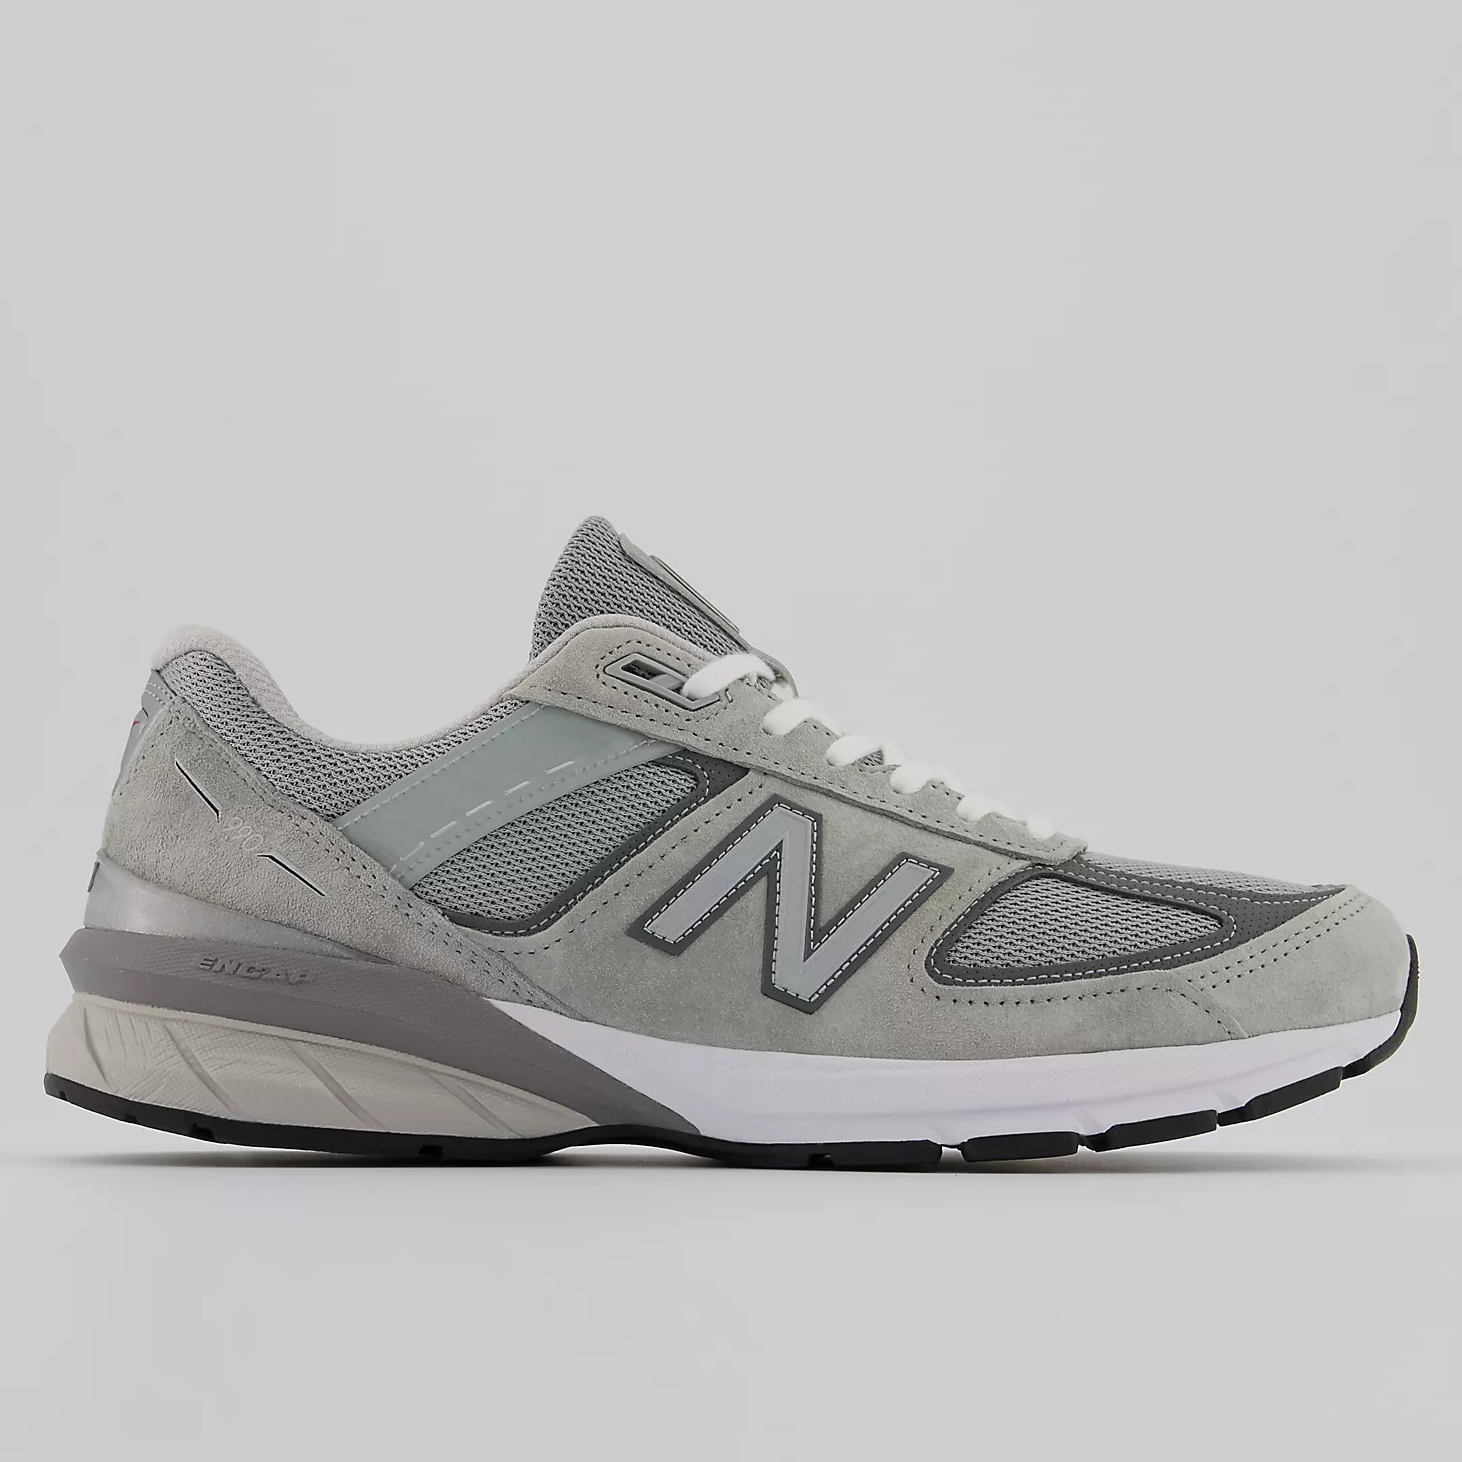 most comfortable sneakers - New Balance 990v5